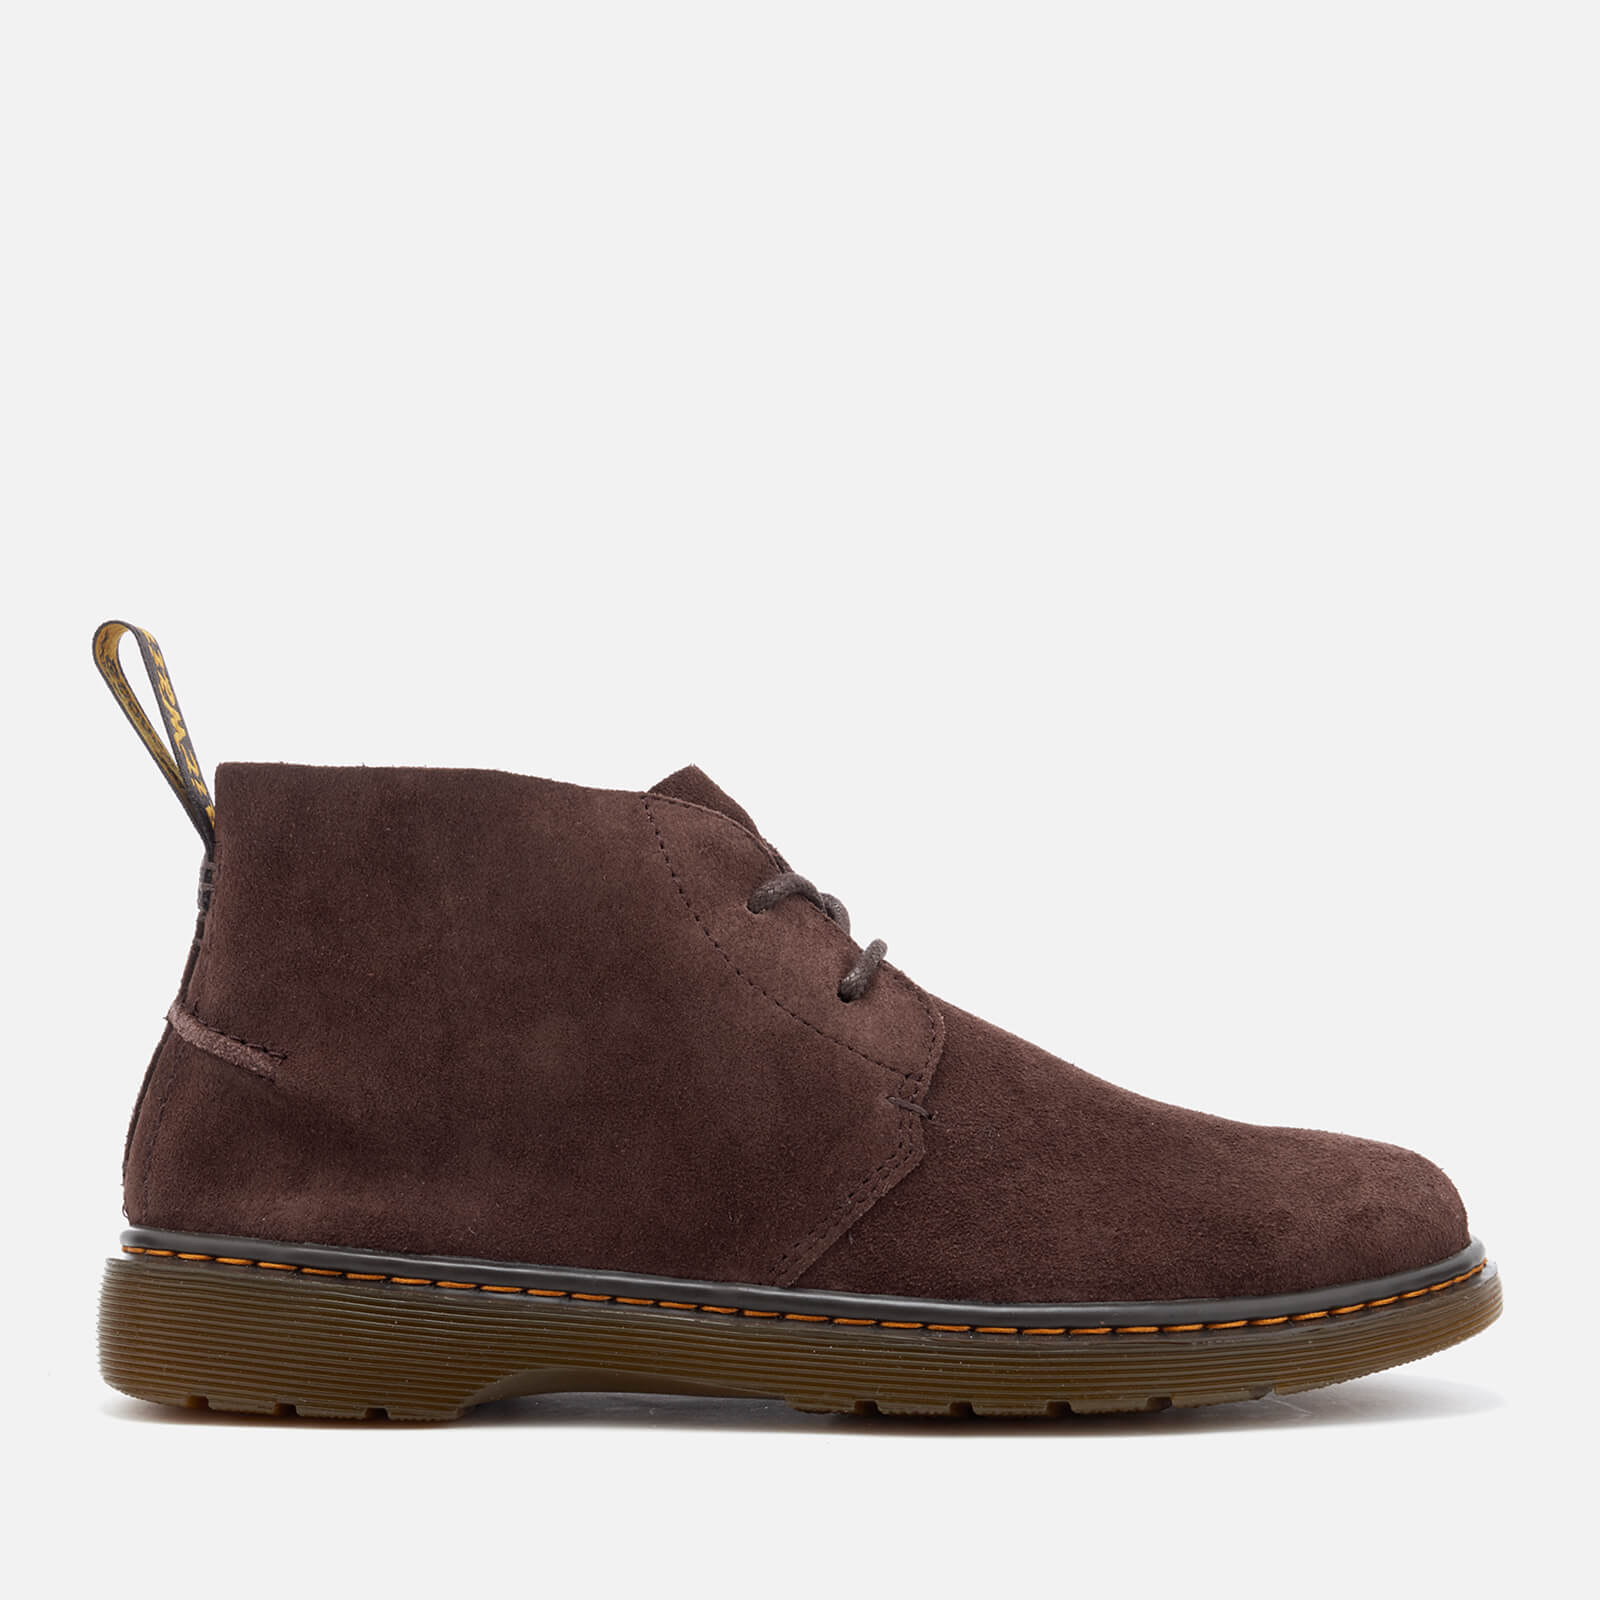 2957832652a Dr. Martens Men's Ember Bronx Suede Lace Low Boots - Dark Brown